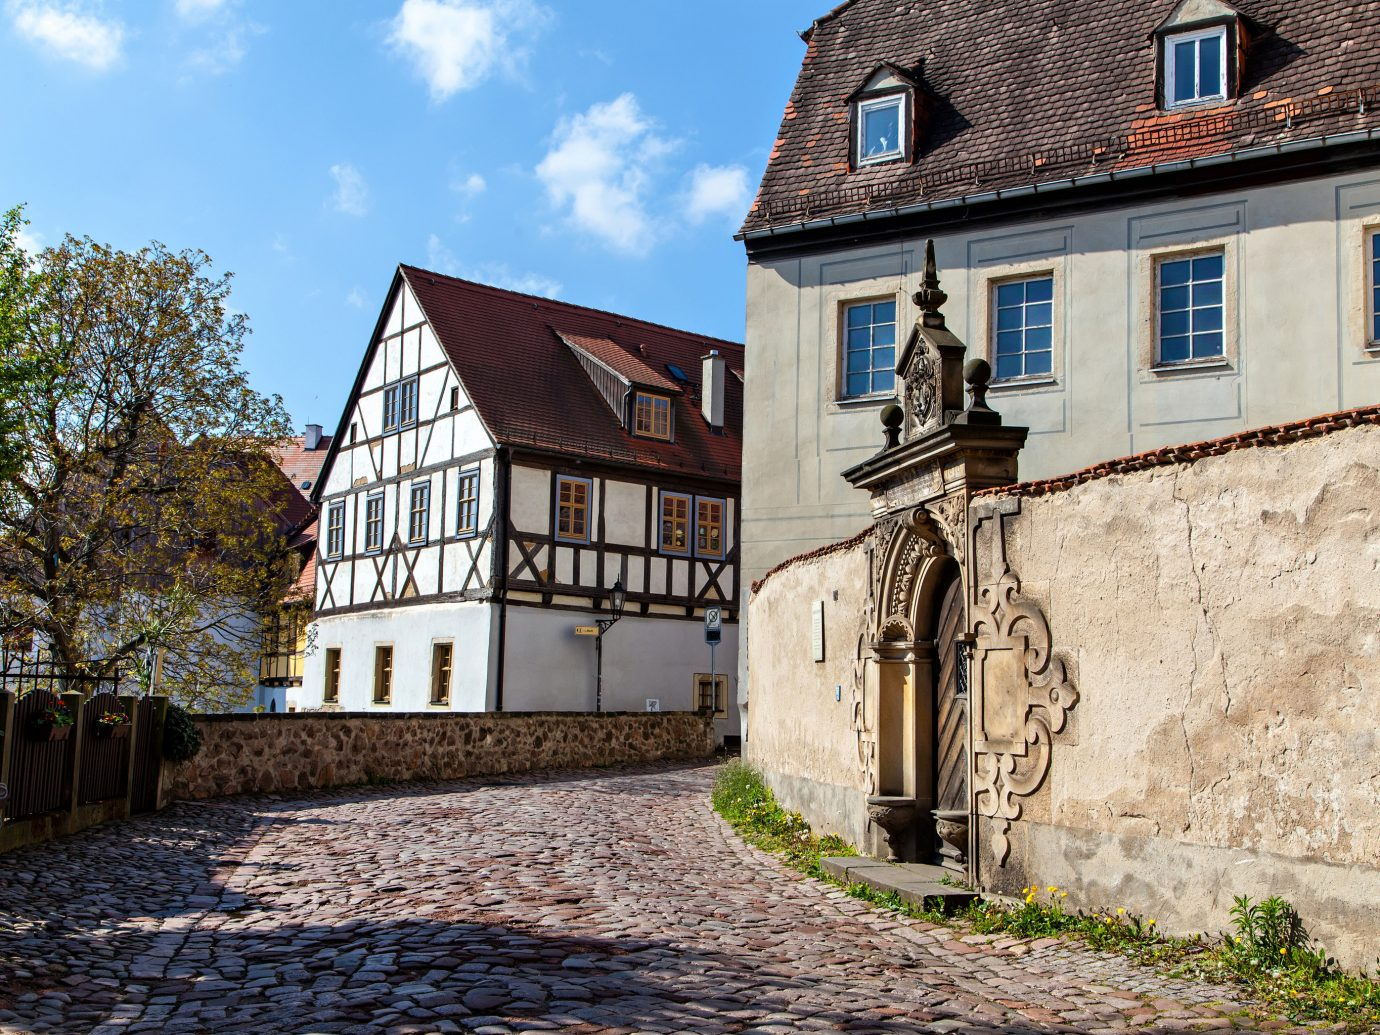 Berlin europe Germany Trip Ideas property house Town home cottage building estate sky facade real estate window Village medieval architecture Villa manor house farmhouse